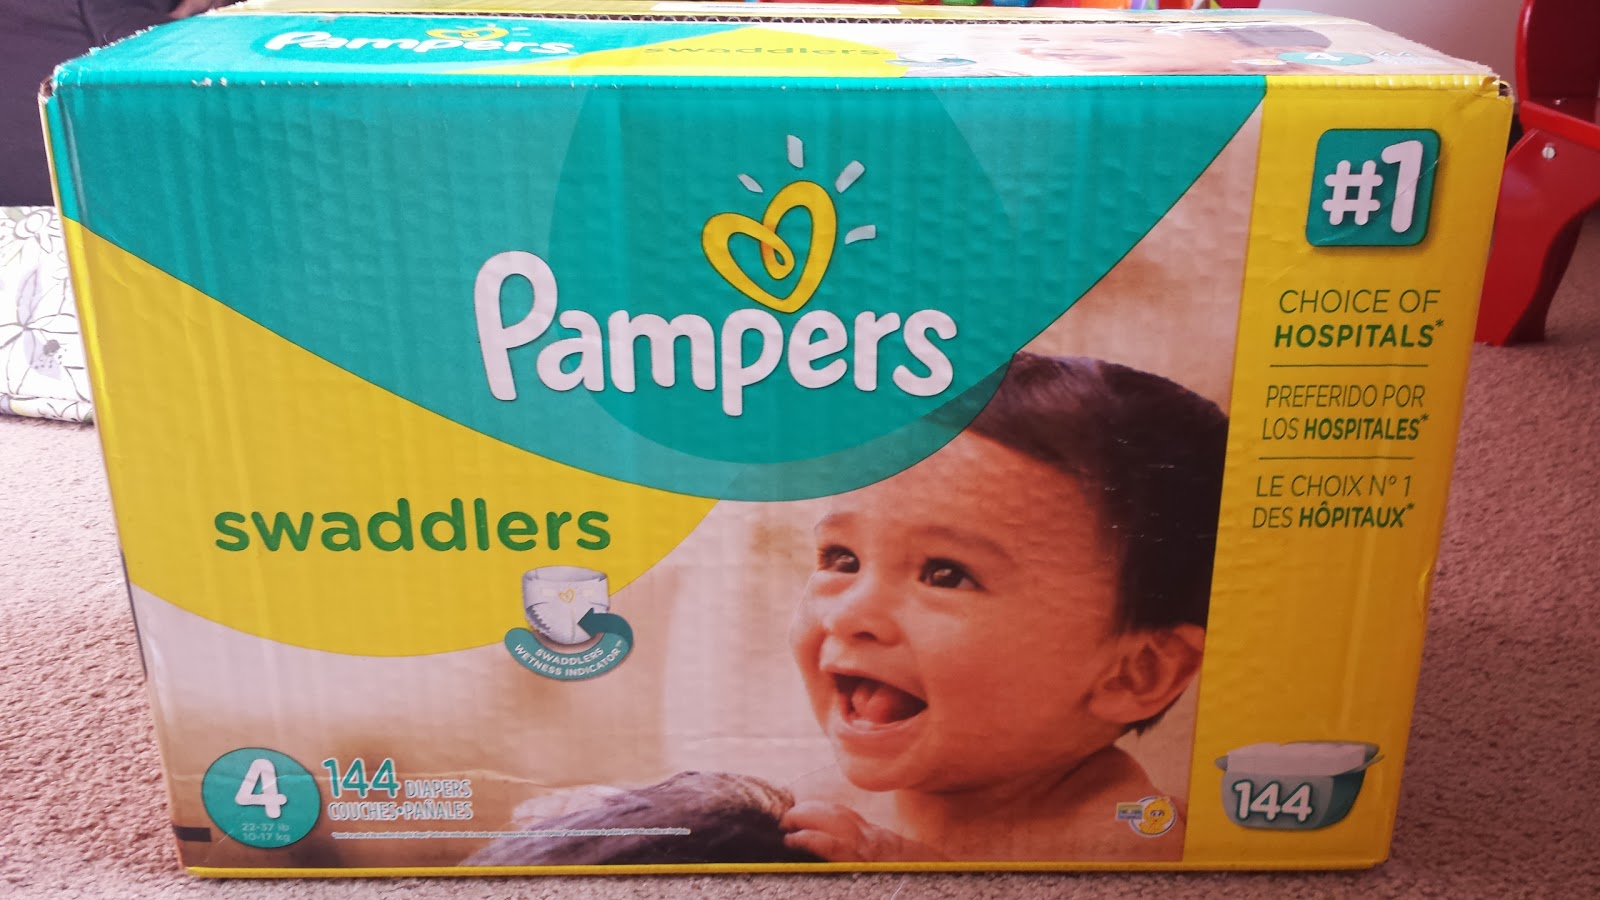 pampers swaddlers coupons - HD1600×900